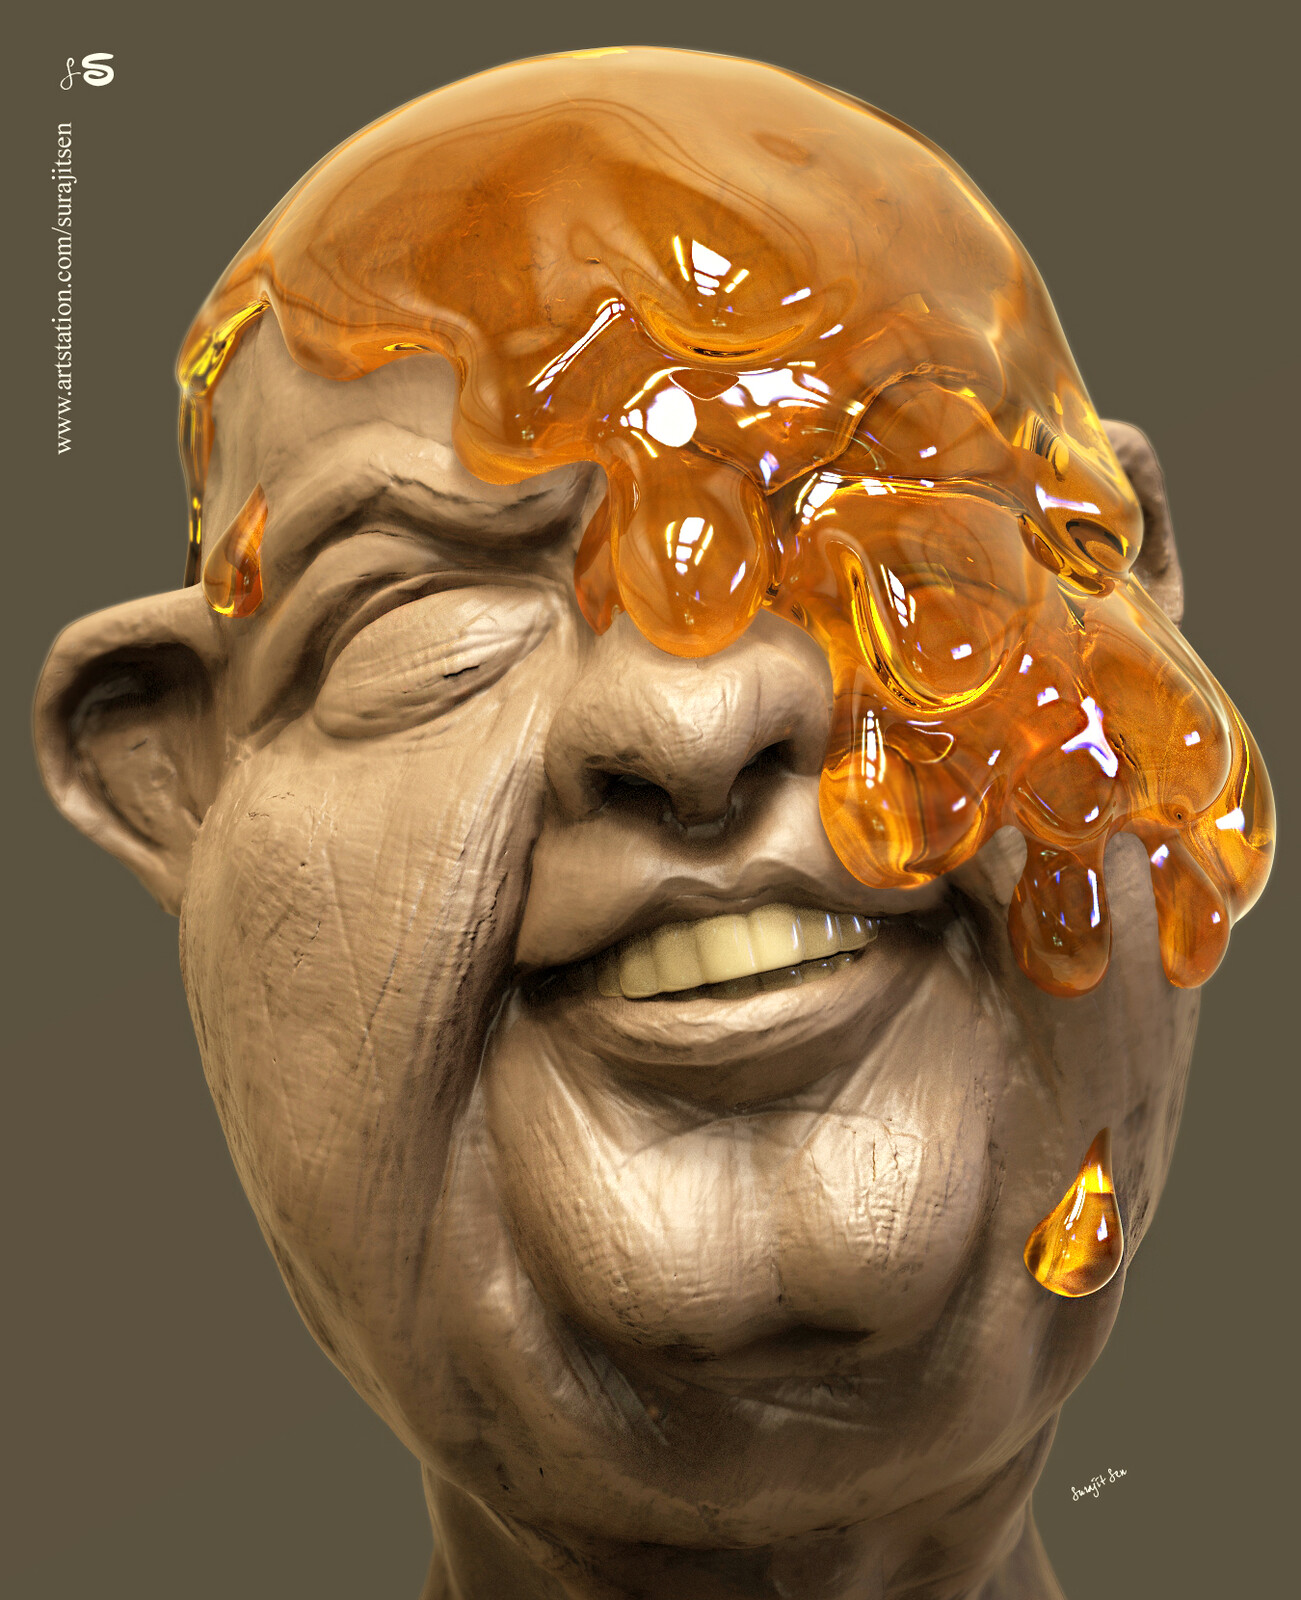 One of my speed Digital Sculptures....Honeytus.  Just played with brushes.  Background music - #hanszimmermusic